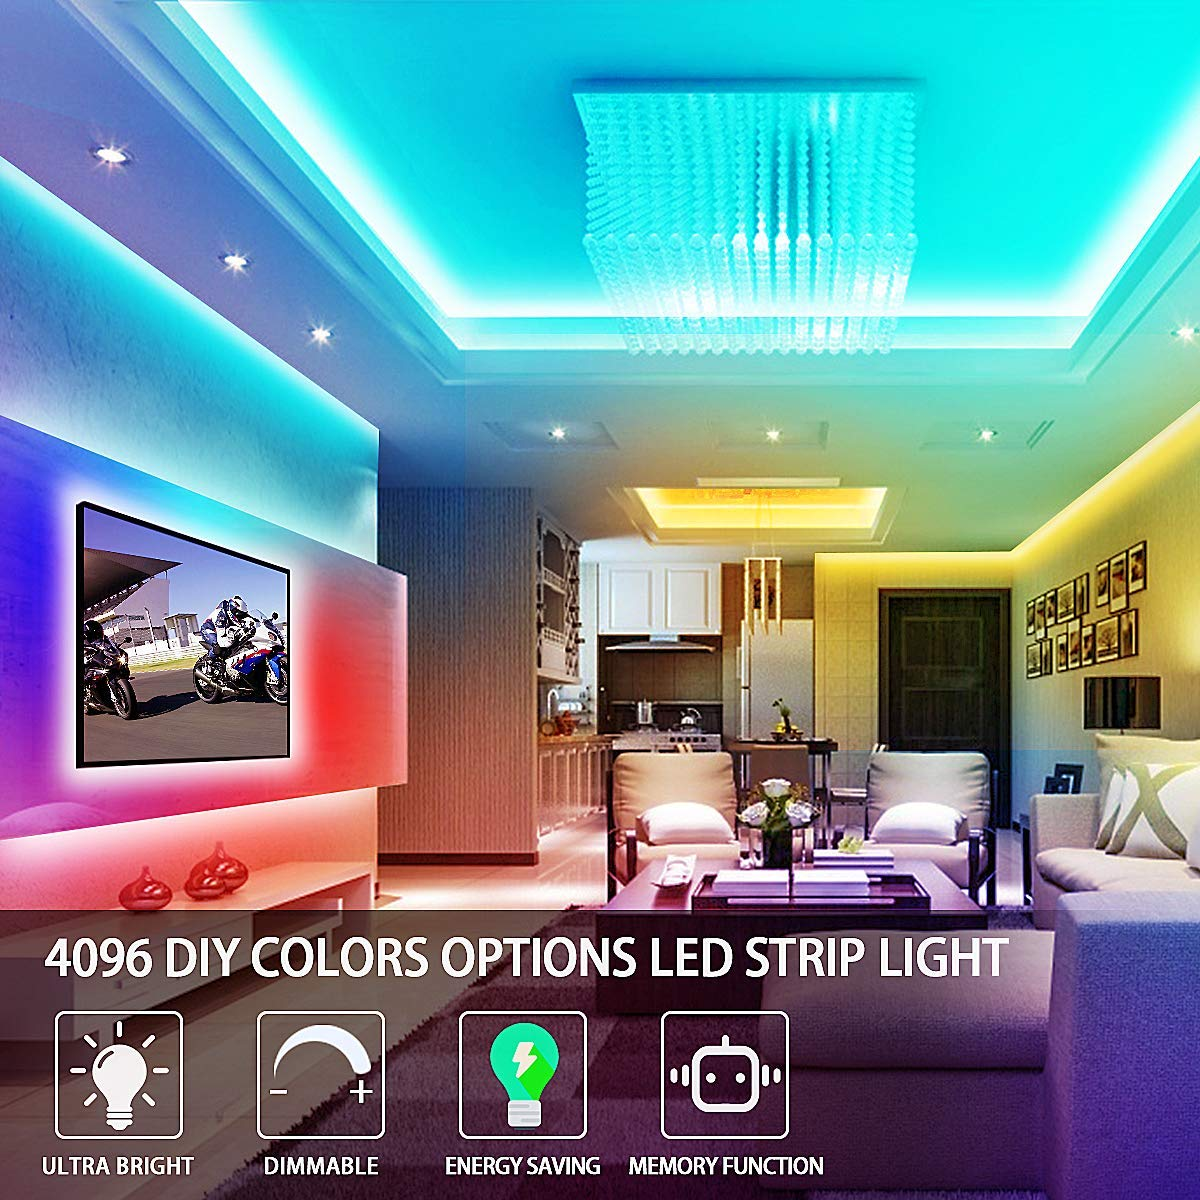 RGB LED Strip Lights 16.4ft, Bright 4096 DIY Colors Rope Lights with Memory Function, Self-Adhesive Color Changing Light Strip with Remote, 30mins Timing Off LED Tape Light Kits for Home Decor